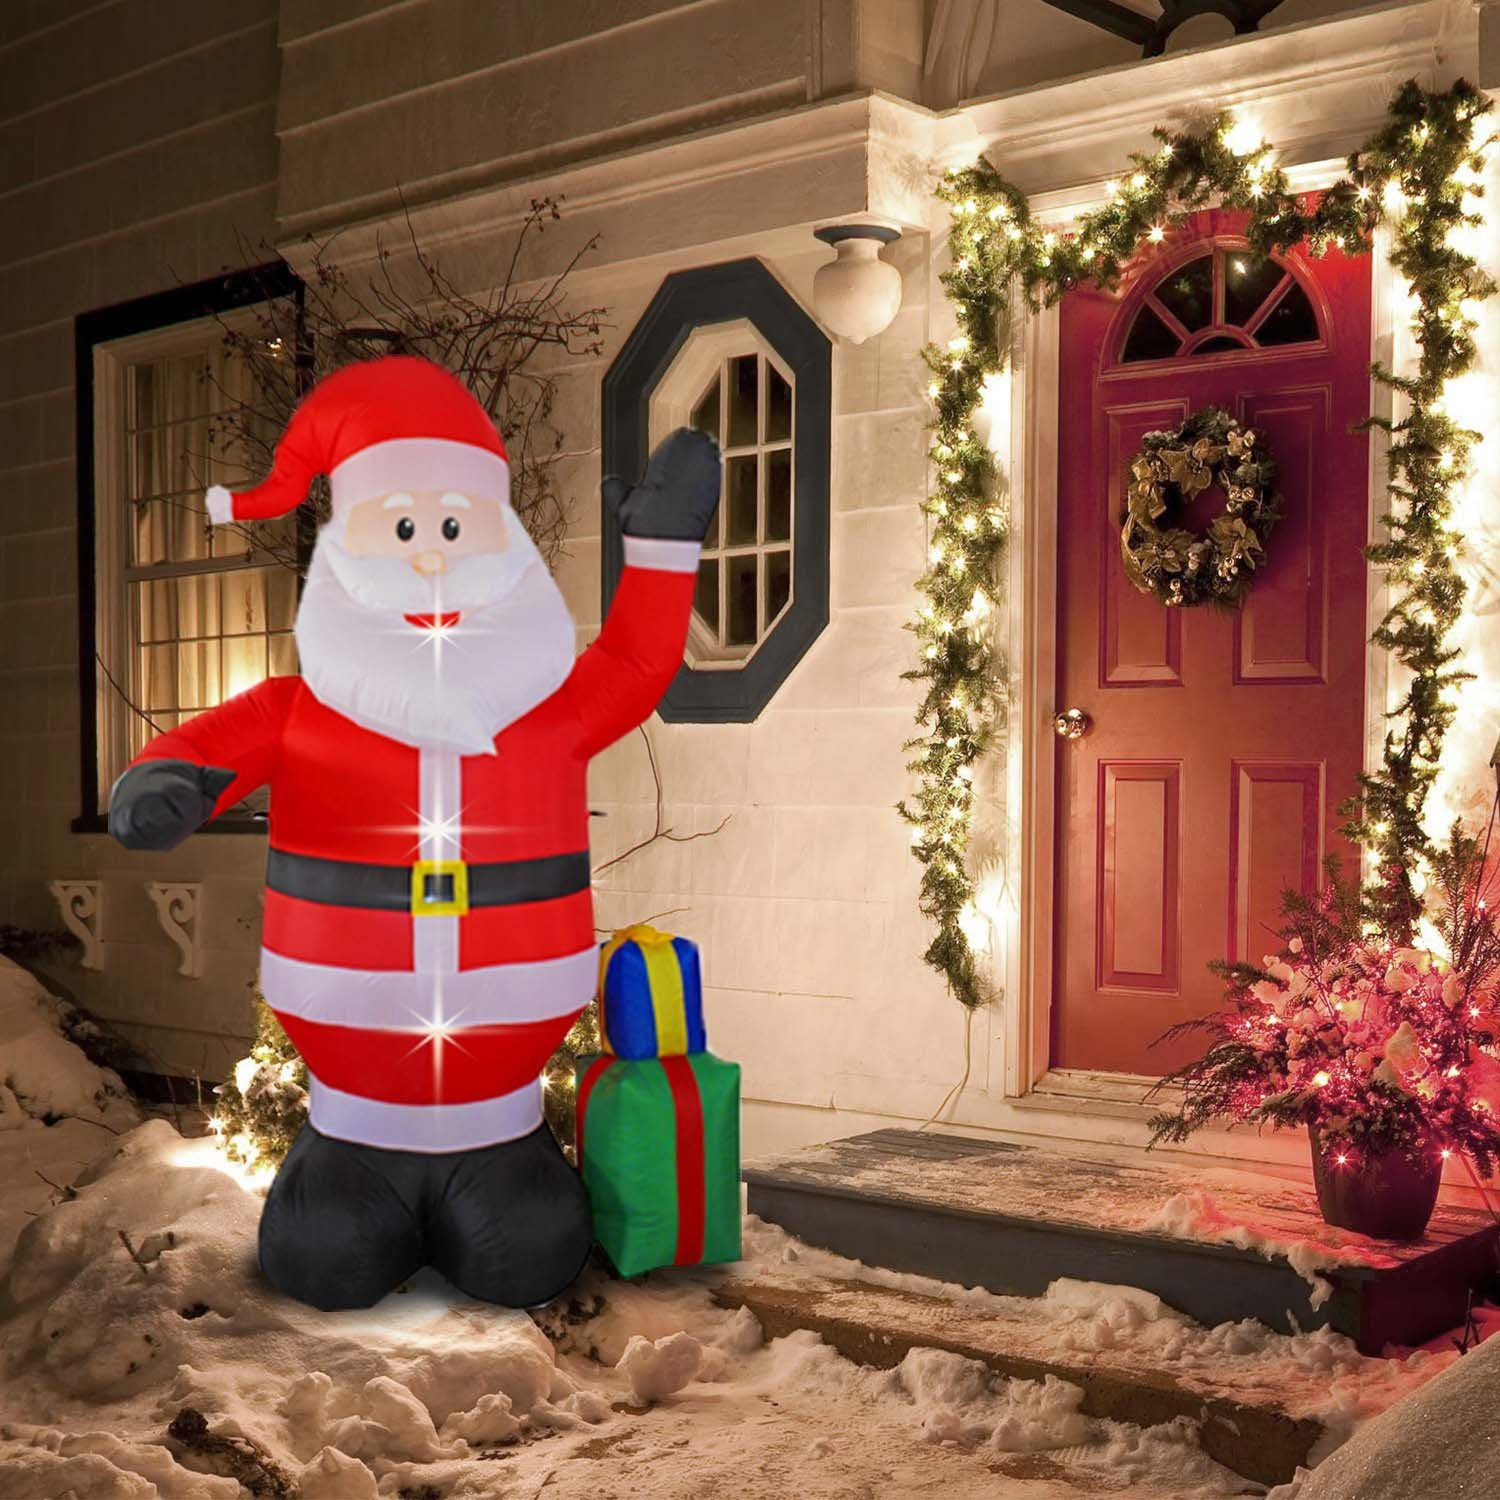 8 Foot Inflatable Portable Christmas Santa Claus Xmas Indoor Outdoor Lawn Yard Decoration Place Box Beside Foot